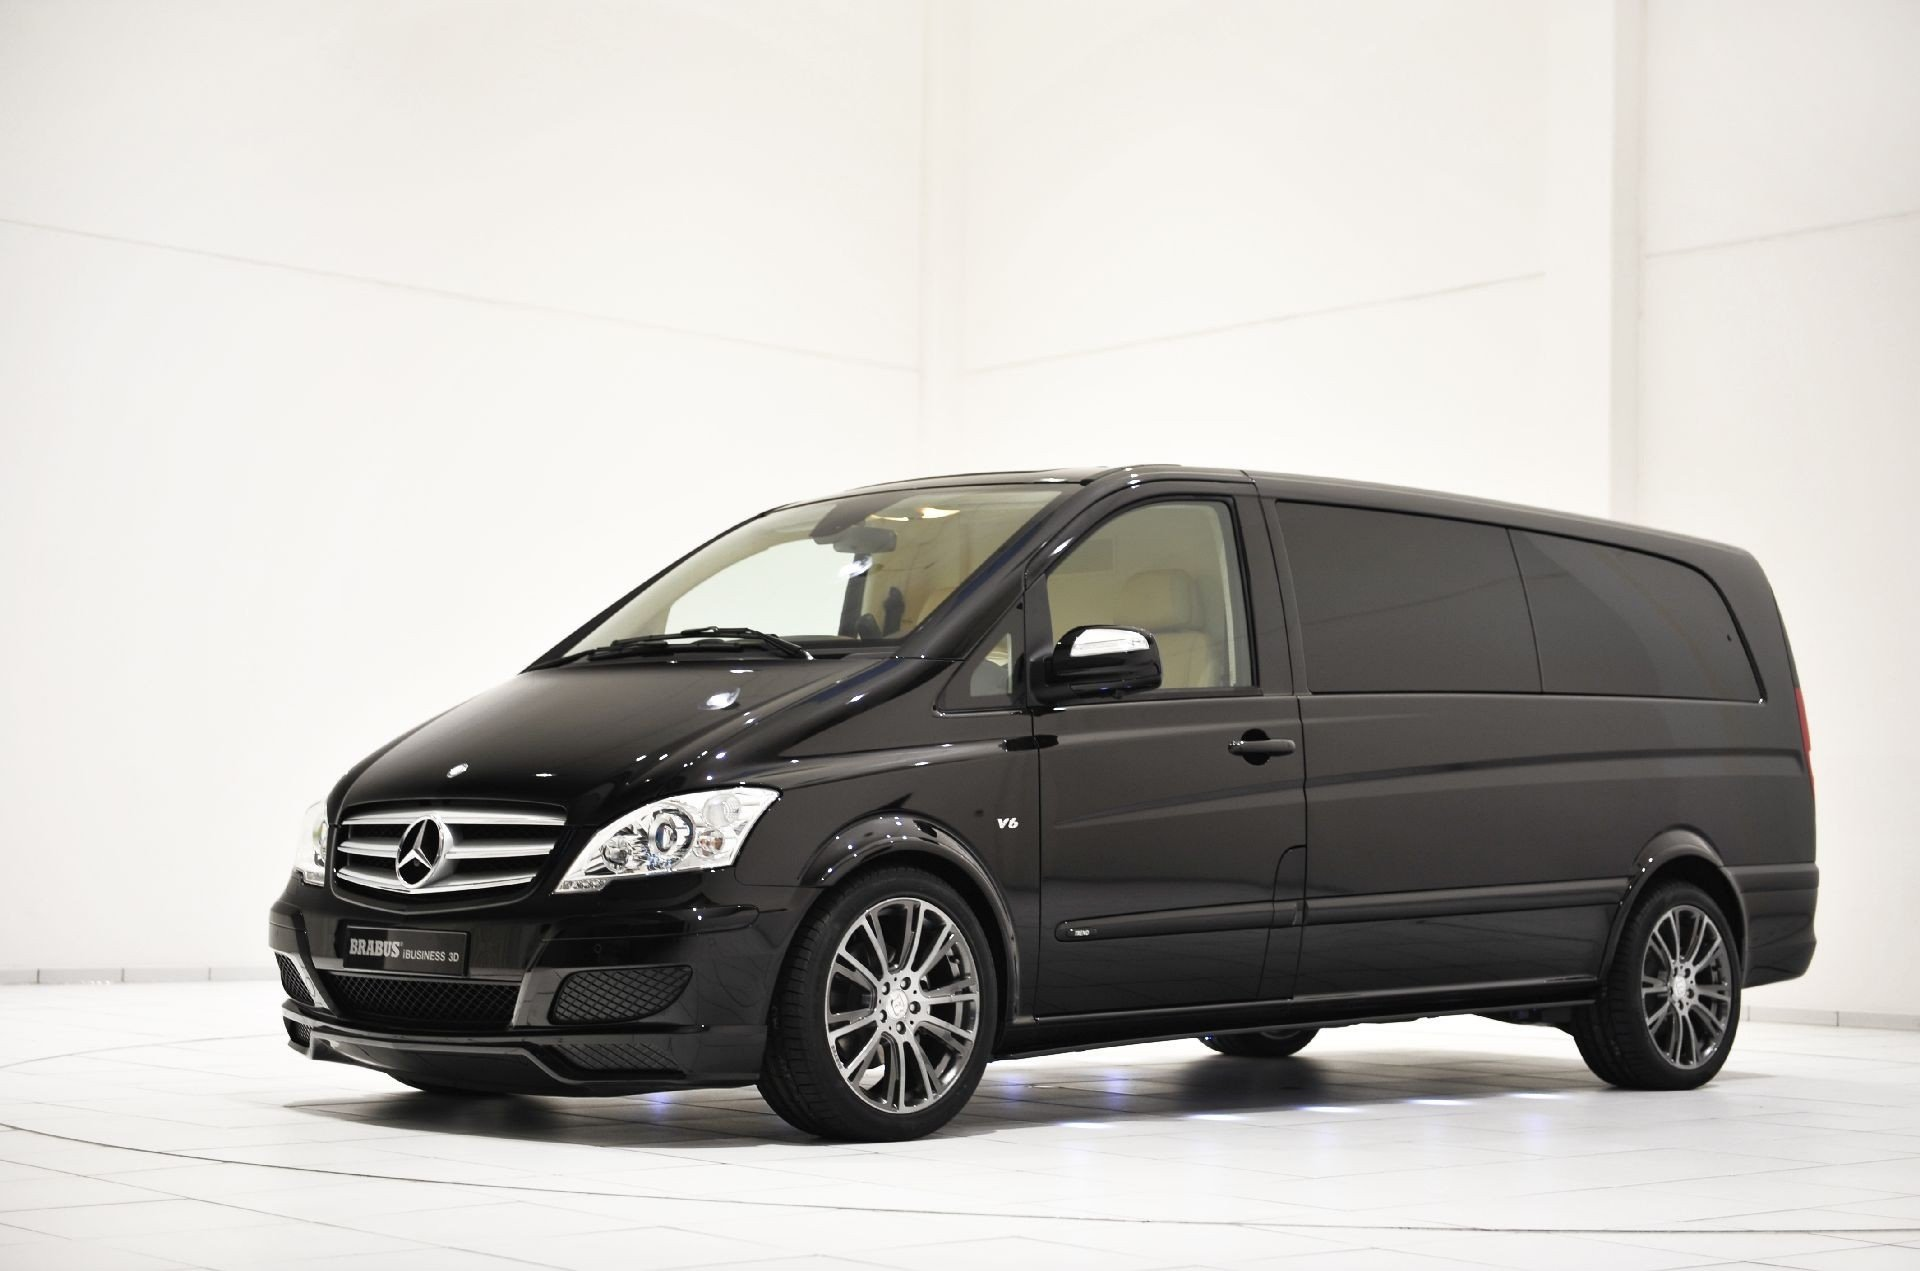 2014 mercedes viano pictures information and specs auto. Black Bedroom Furniture Sets. Home Design Ideas